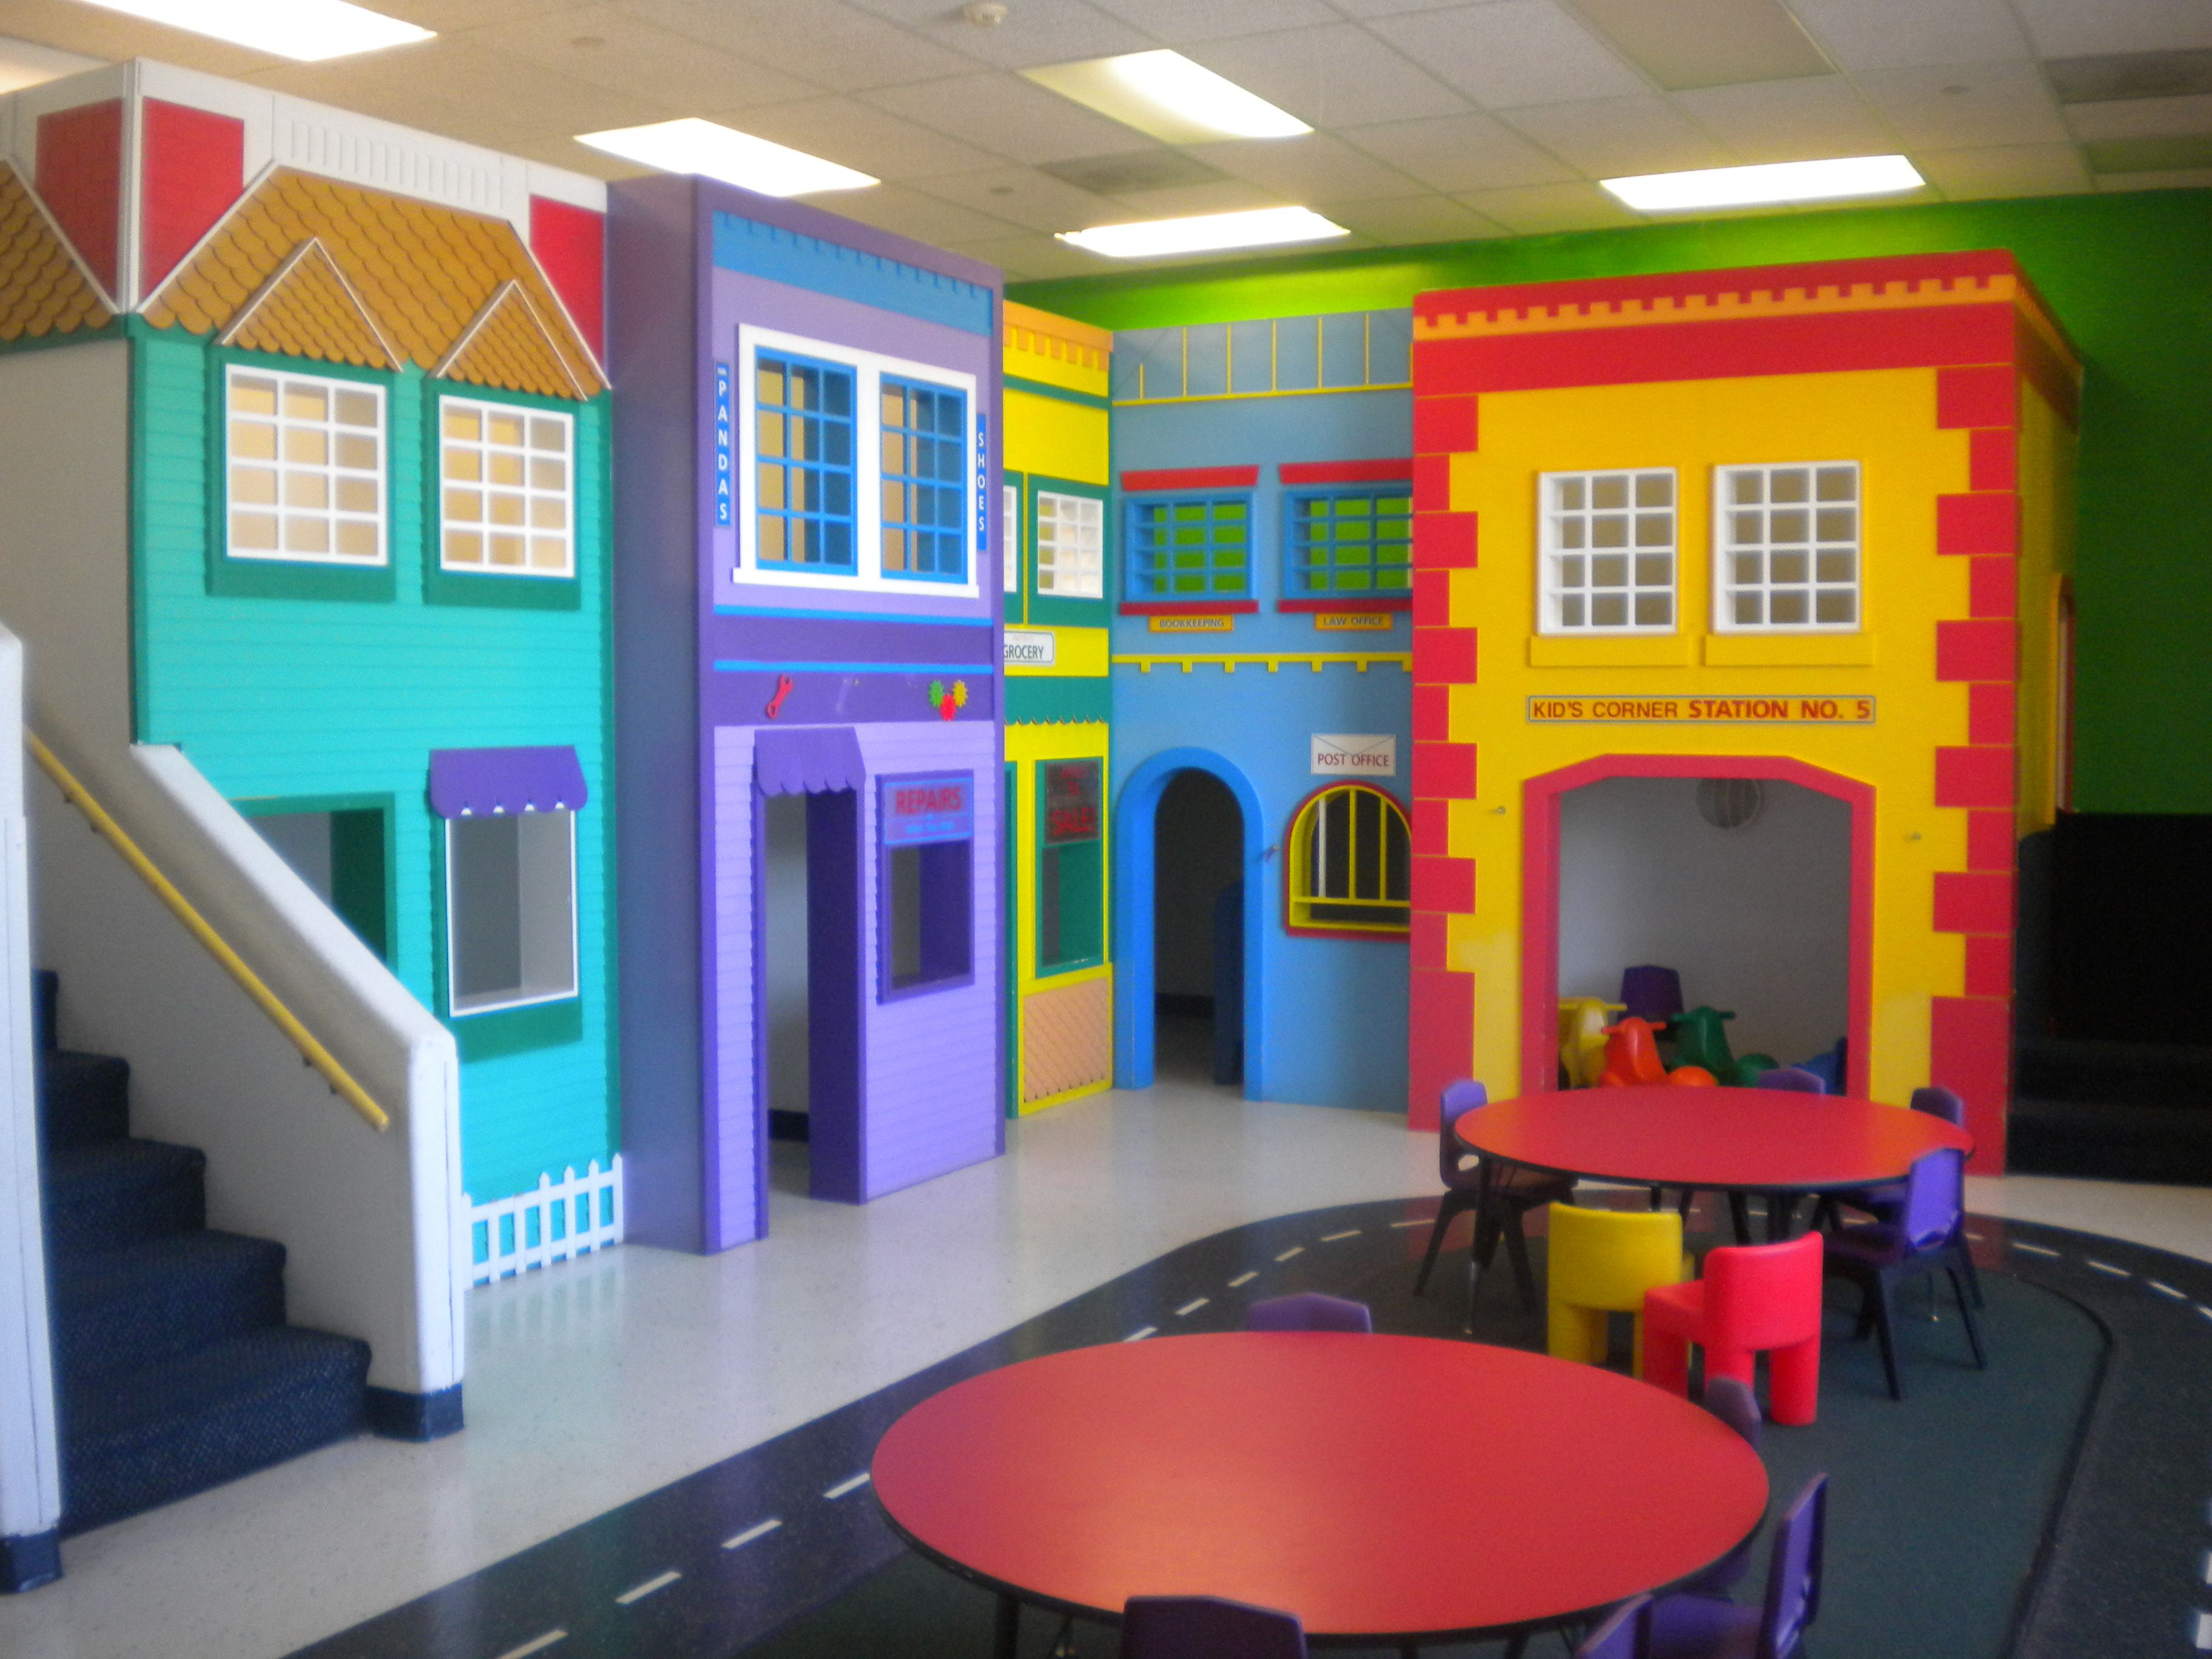 I Love This Idea For Day Care!